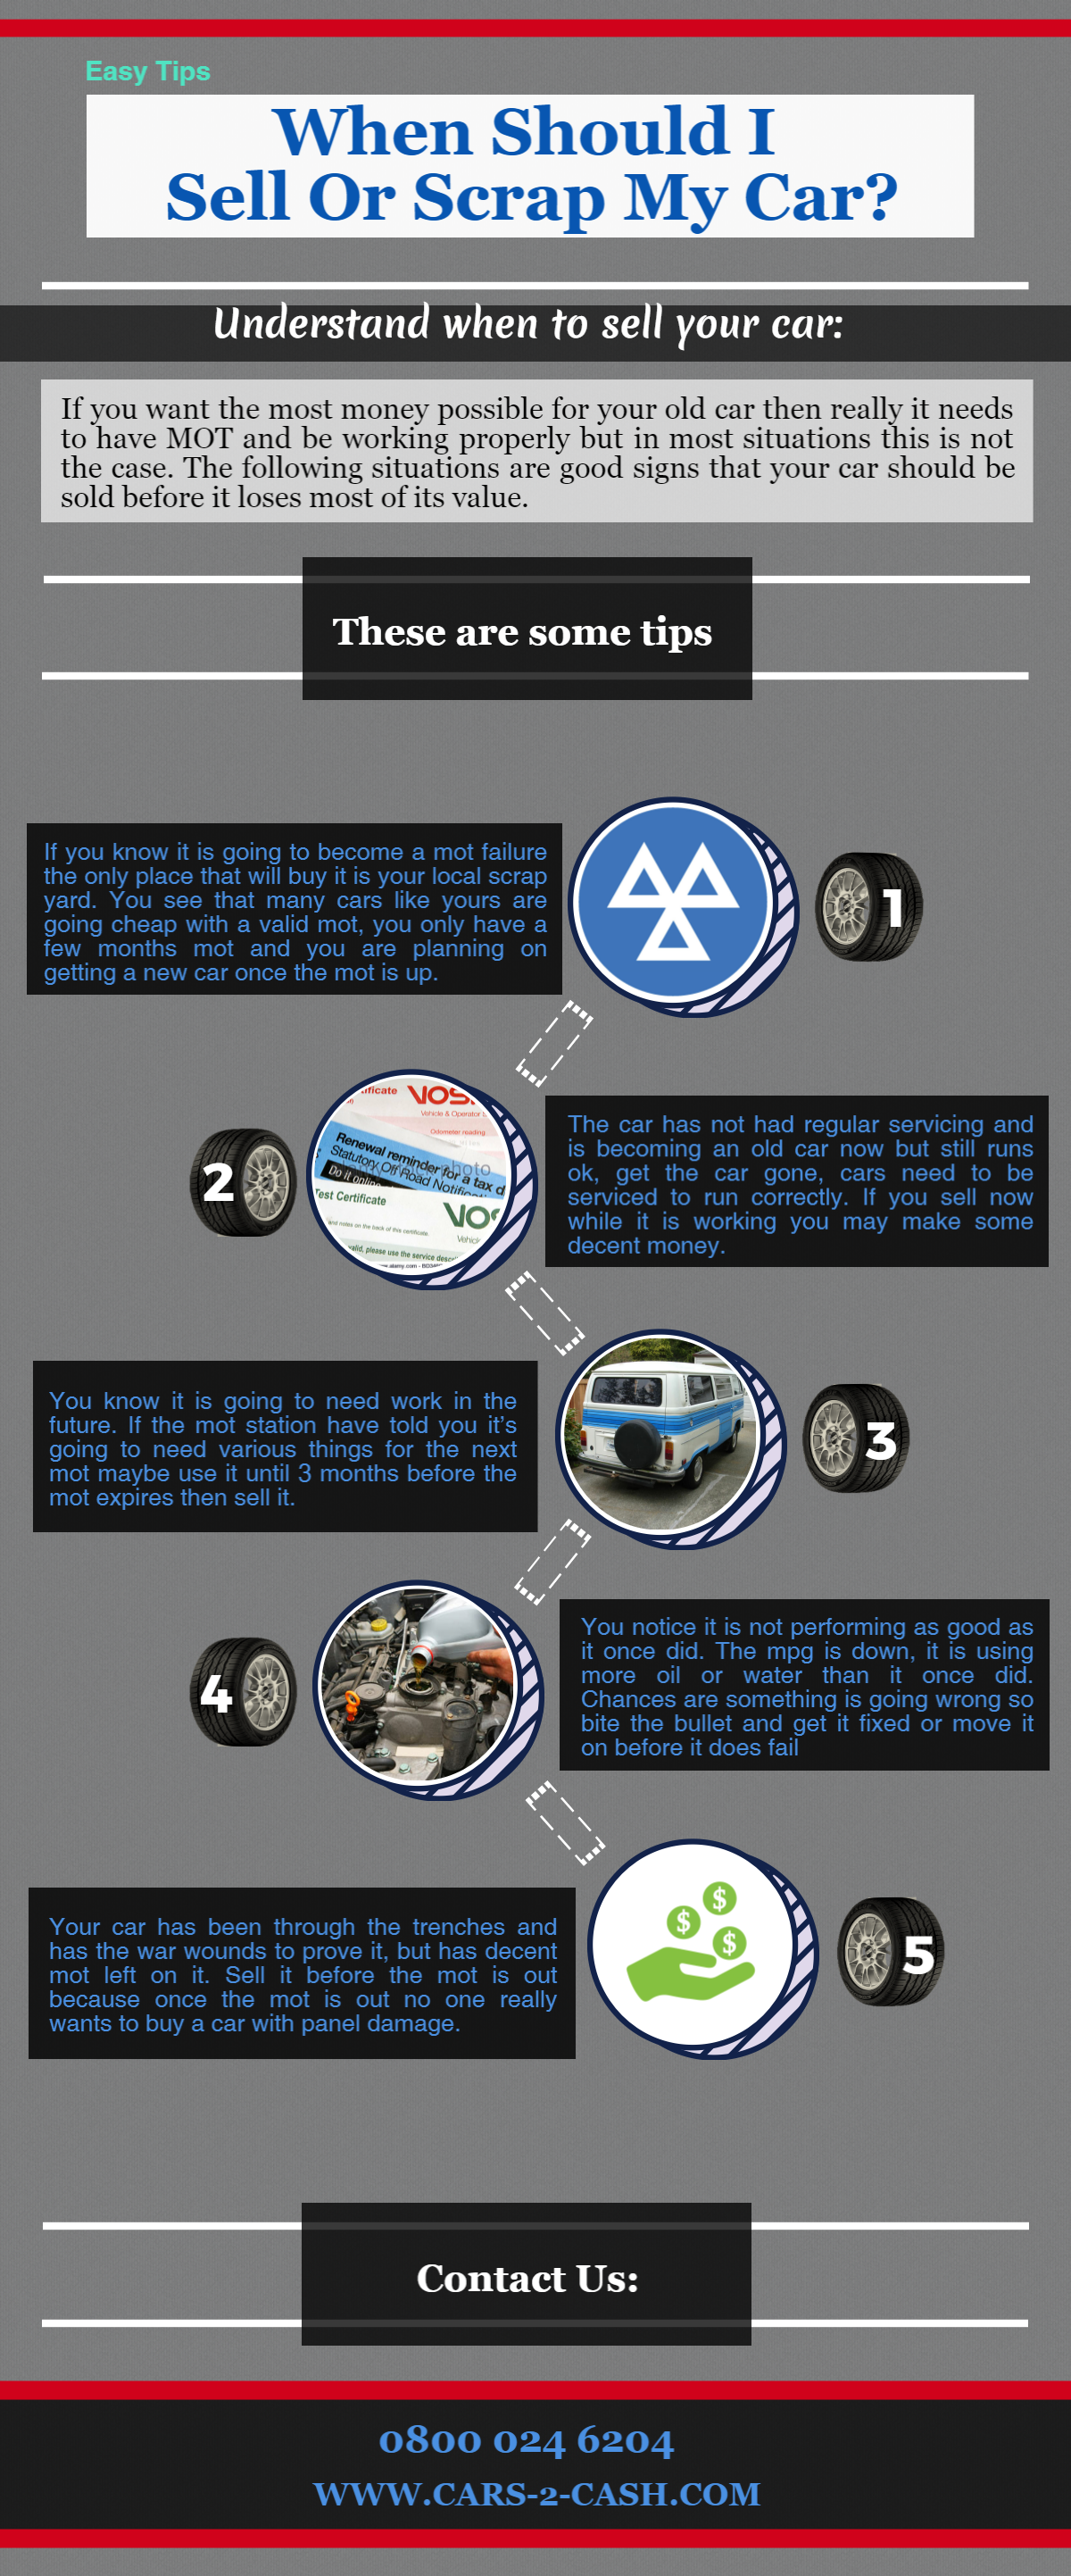 How to scrap car with no log book - 10 Best Images About Infographic Car Tips On Pinterest Cars Quick Cash And It Is